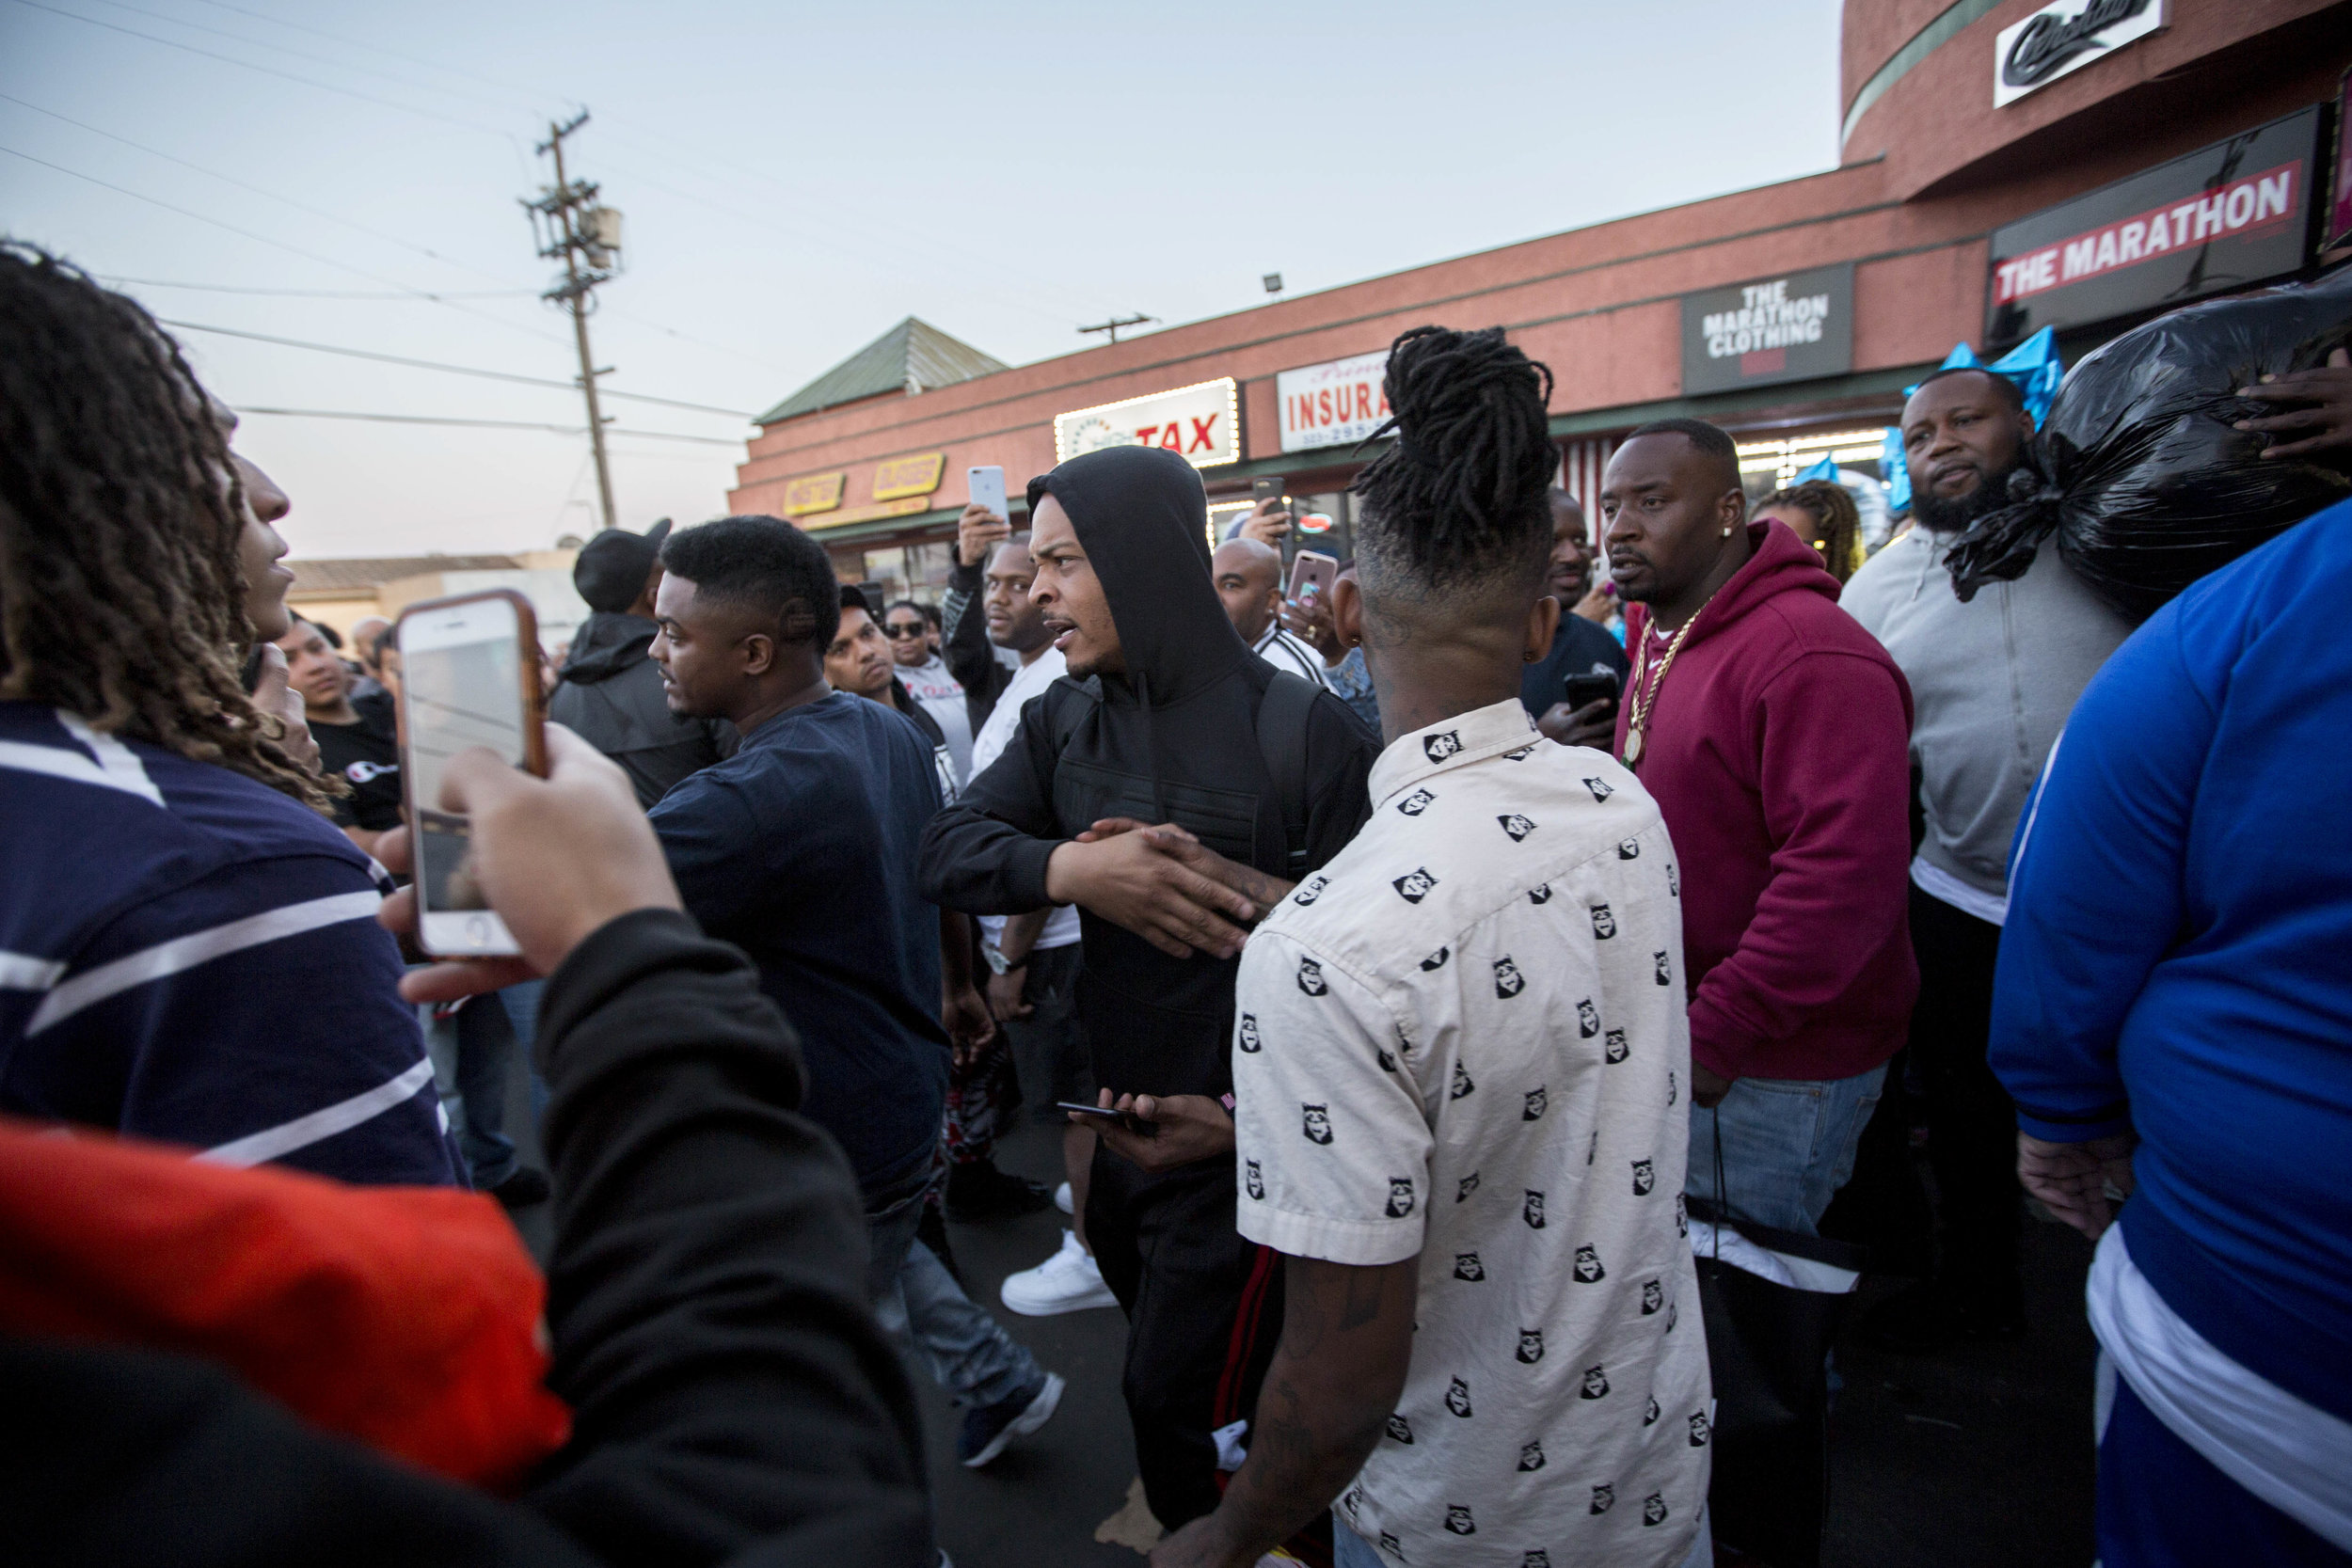 T.I., the rapper, greets fans as he leaves The Marathon Clothing store, after buying bags of clothing, on Slauson Avenue in Los Angeles, California on Wednesday, April 10, 2019. T.I. is one of many celebrities who have made their way to the store to buy out the merchandise in support of Nipsey Hussle and the family. The 33-year-old rapper was murdered on March 31 in front of The Marathon Clothing store which he owned. (Jose Lopez)